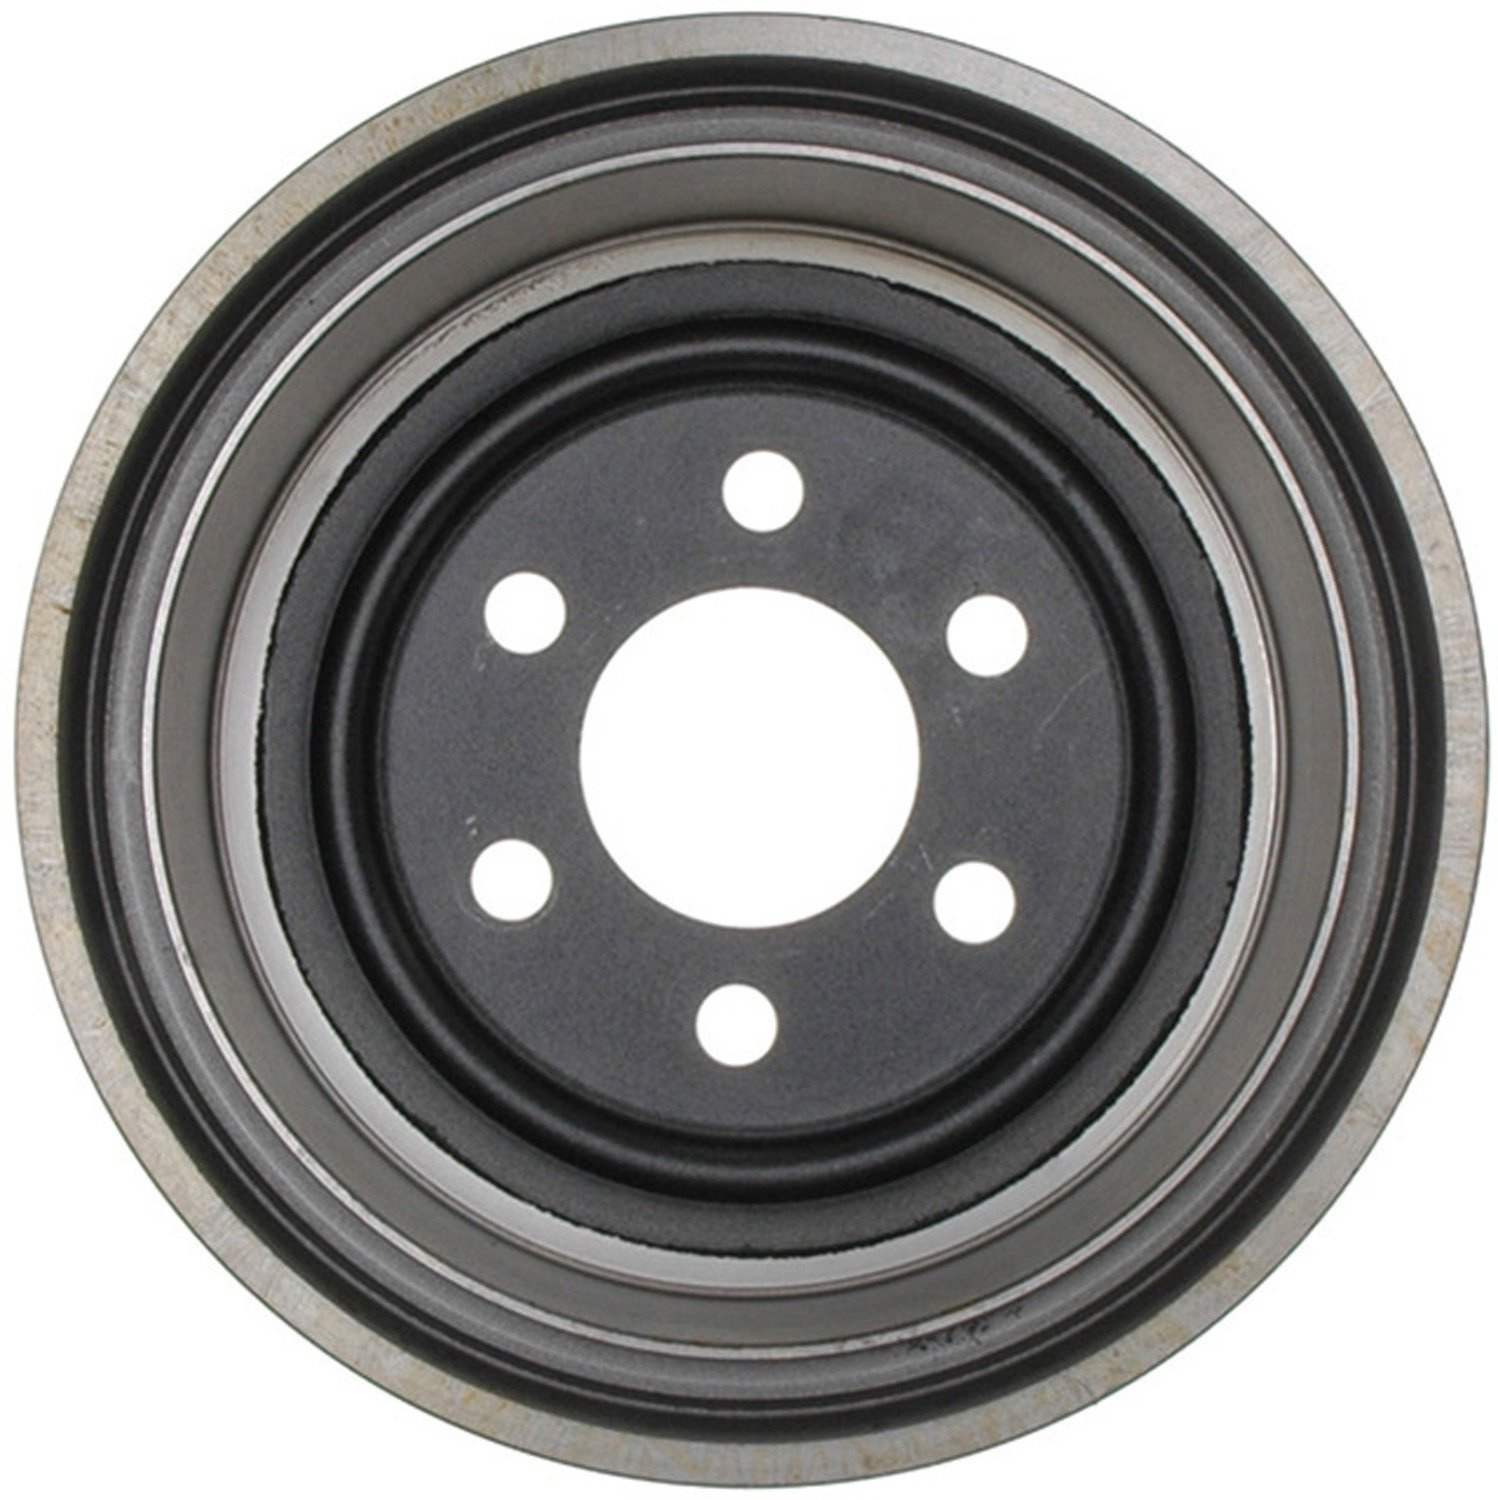 ACDelco 18B251 Professional Rear Brake Drum Assembly